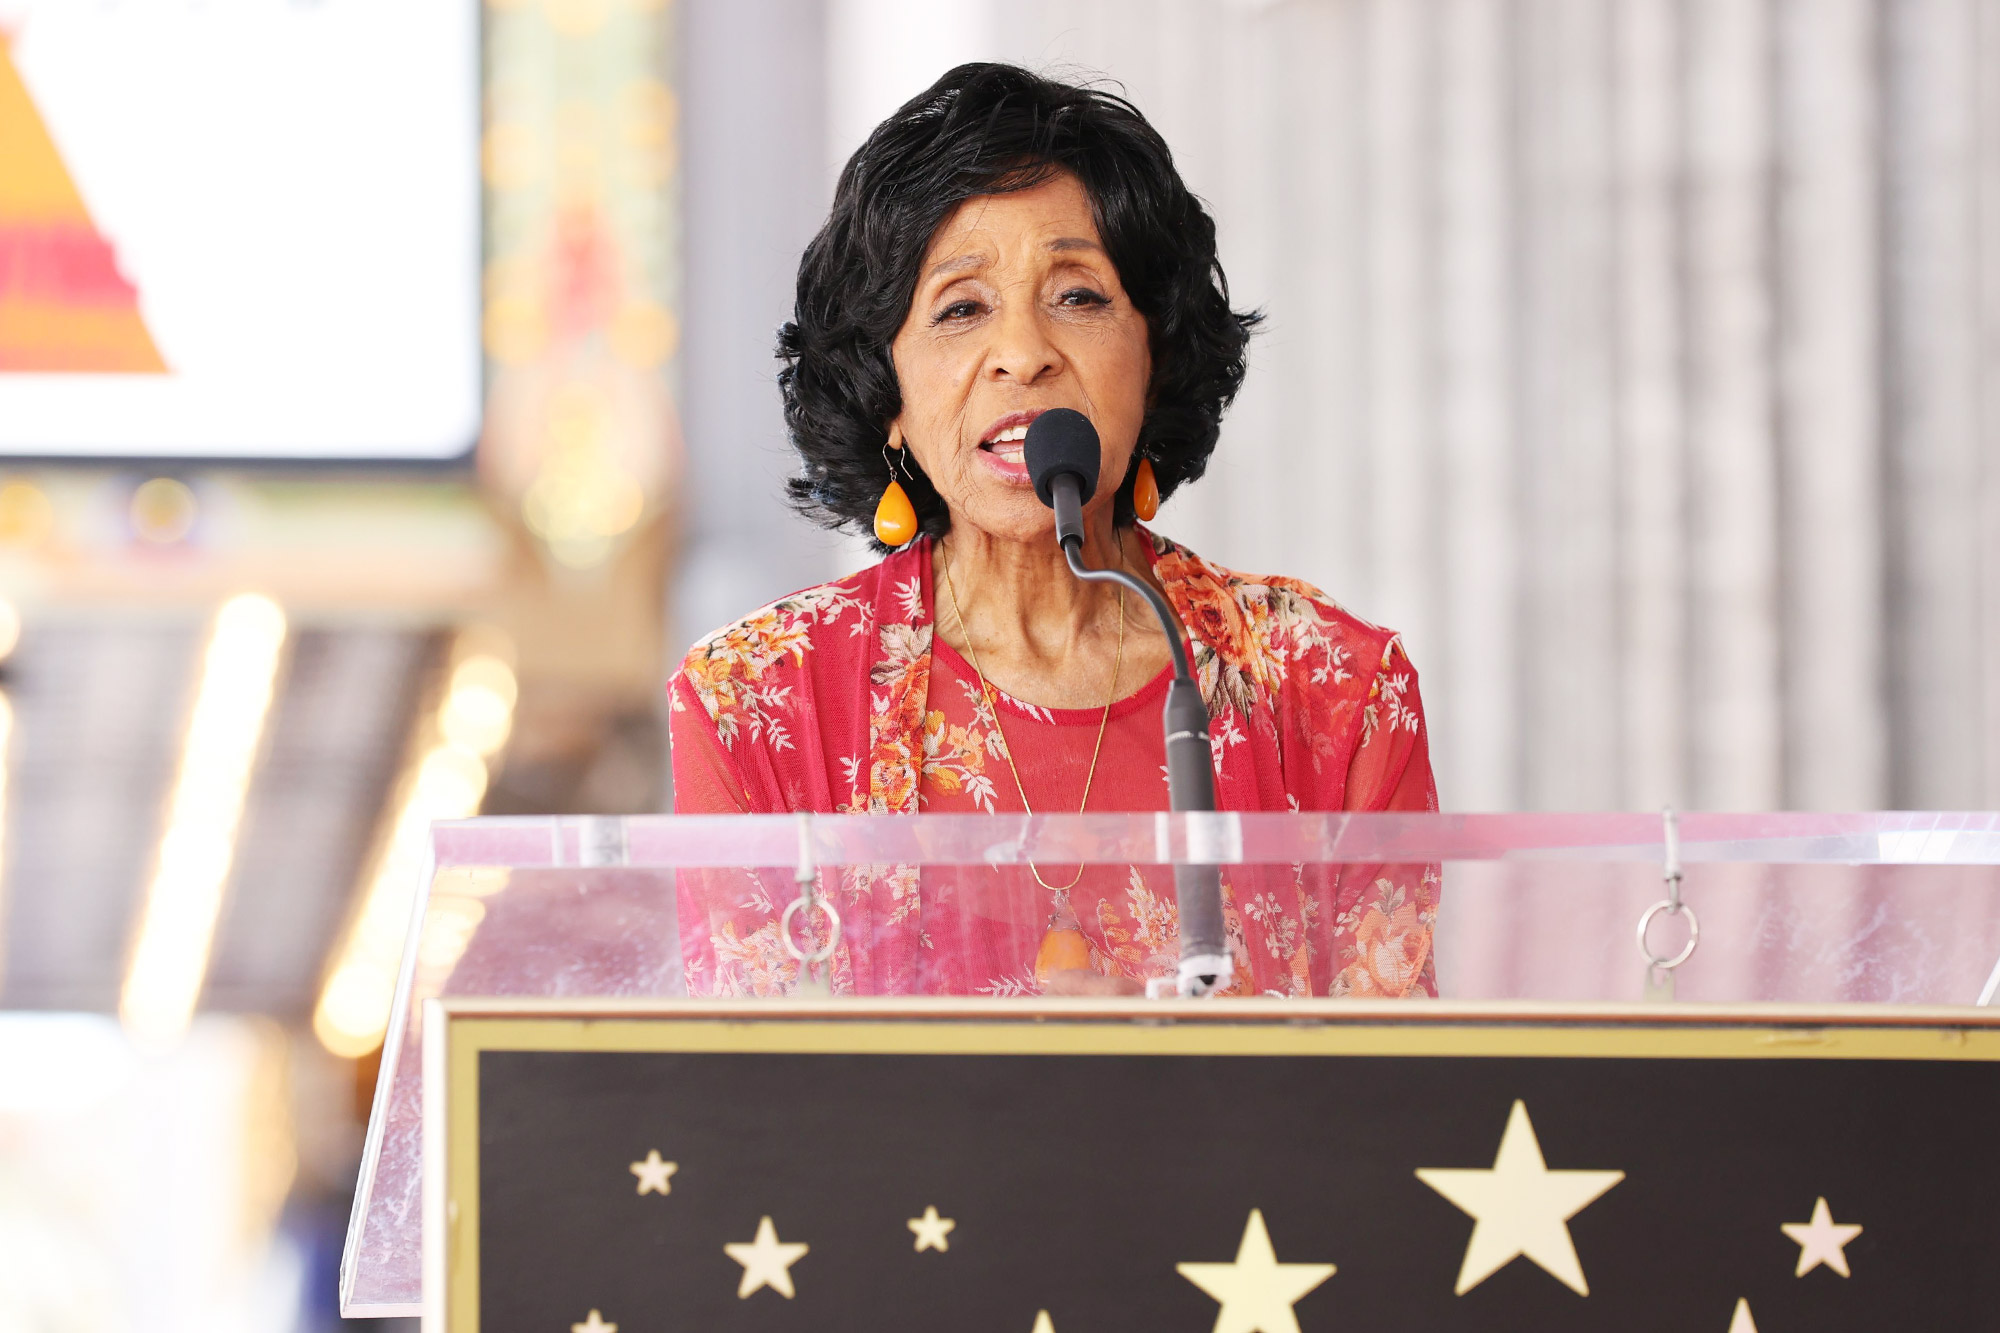 Marla Gibbs Honored With Star On The Hollywood Walk Of Fame